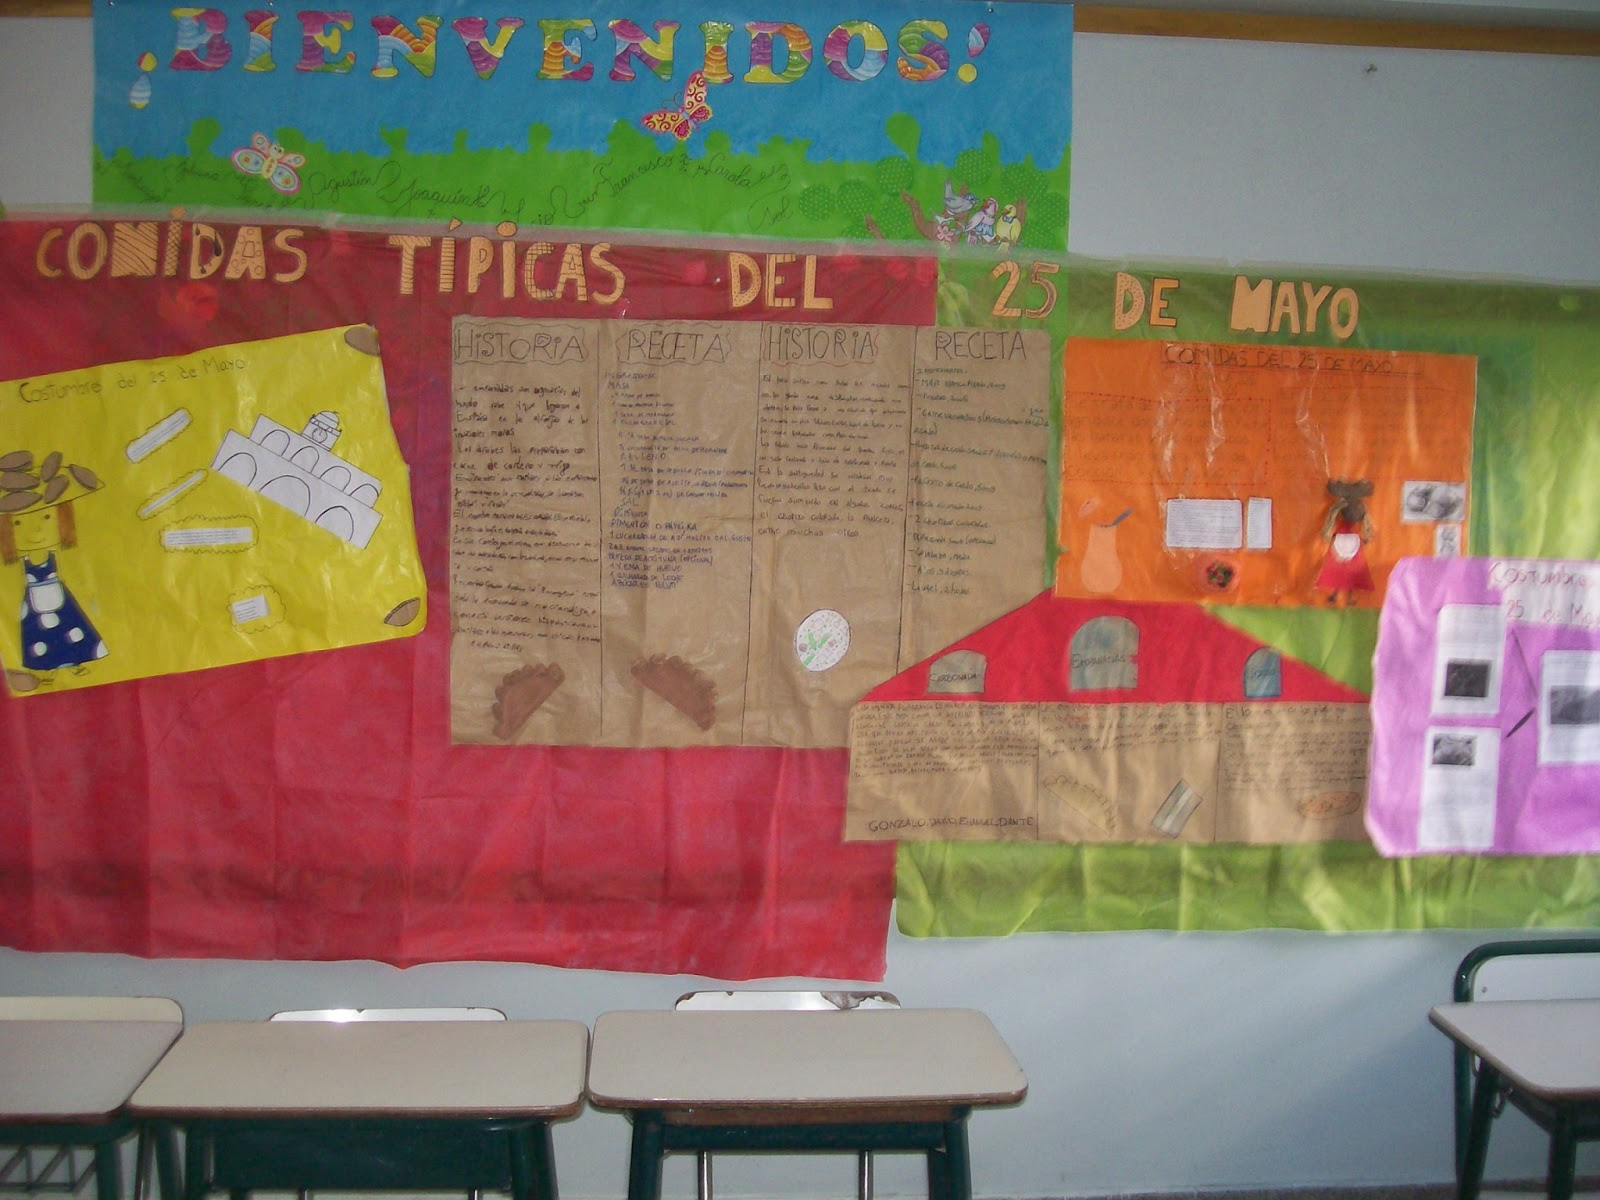 decoracion escolar del 25 de mayo escuela del sur 2013 25 On decoracion 25 de mayo nivel inicial